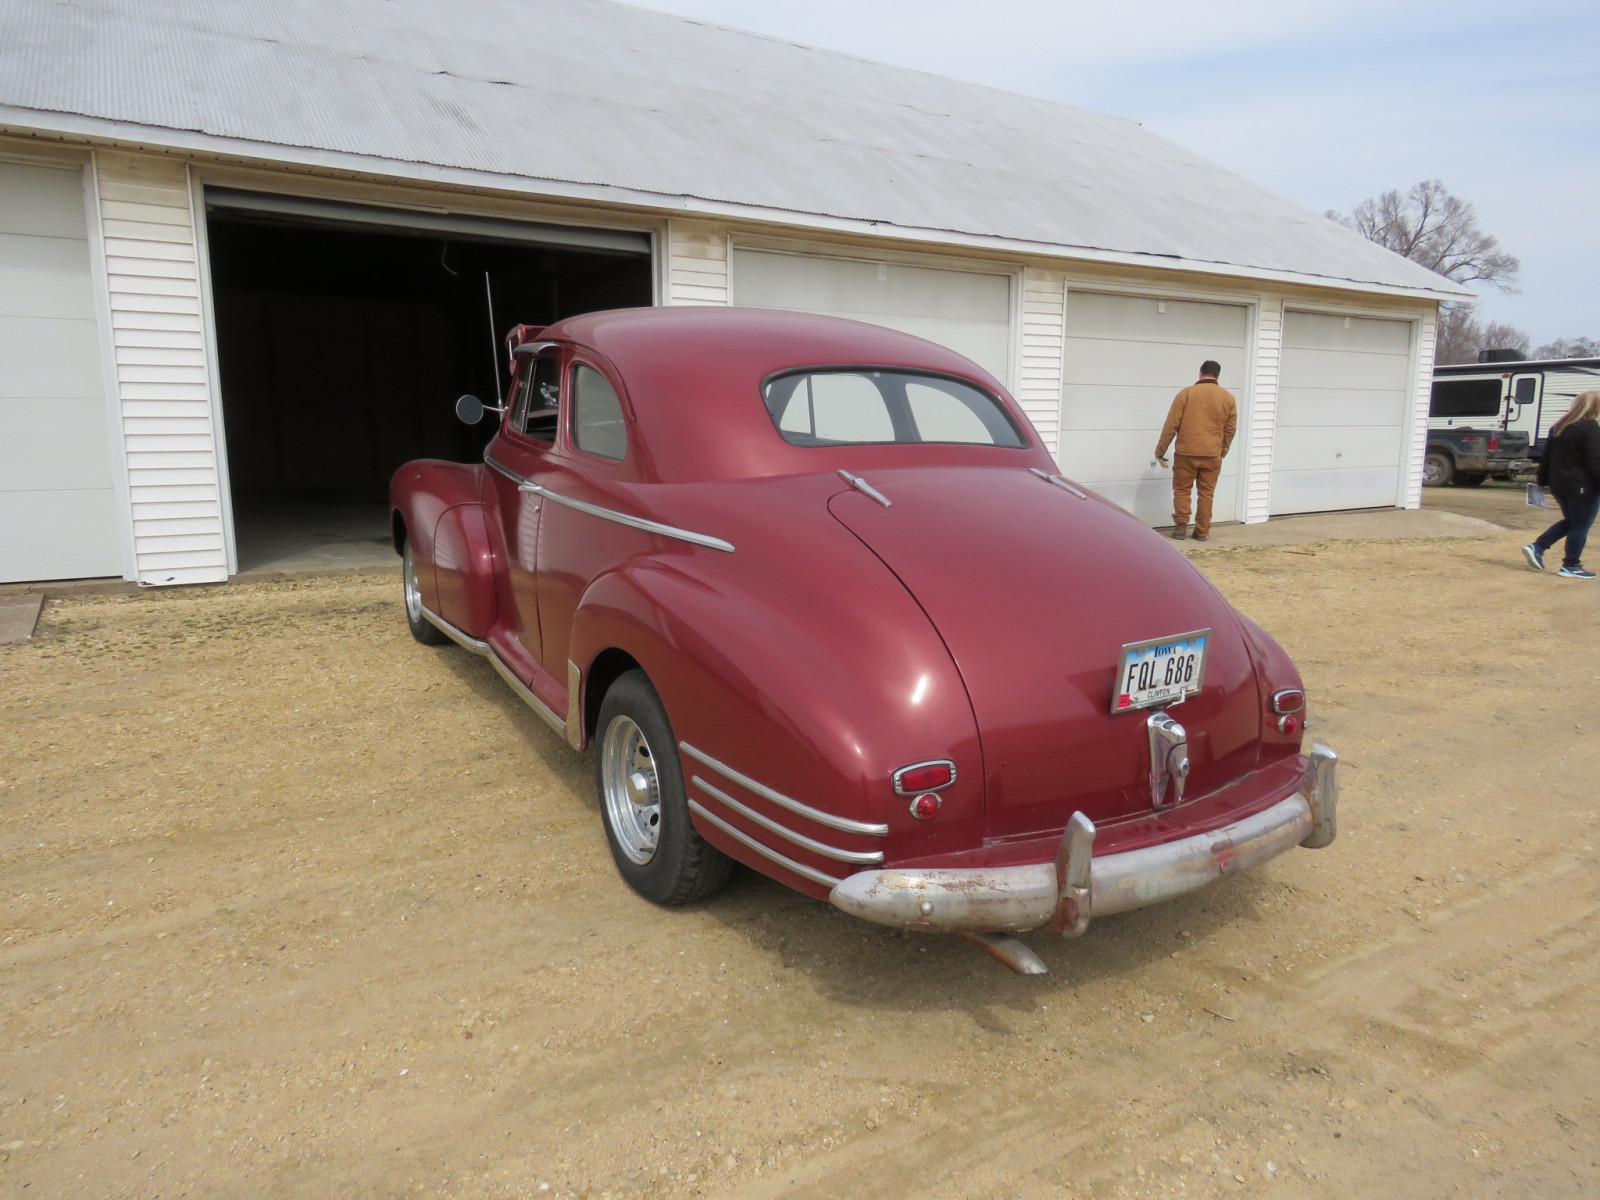 1946 Chevrolet Fleet master Business Coupe - Image 5